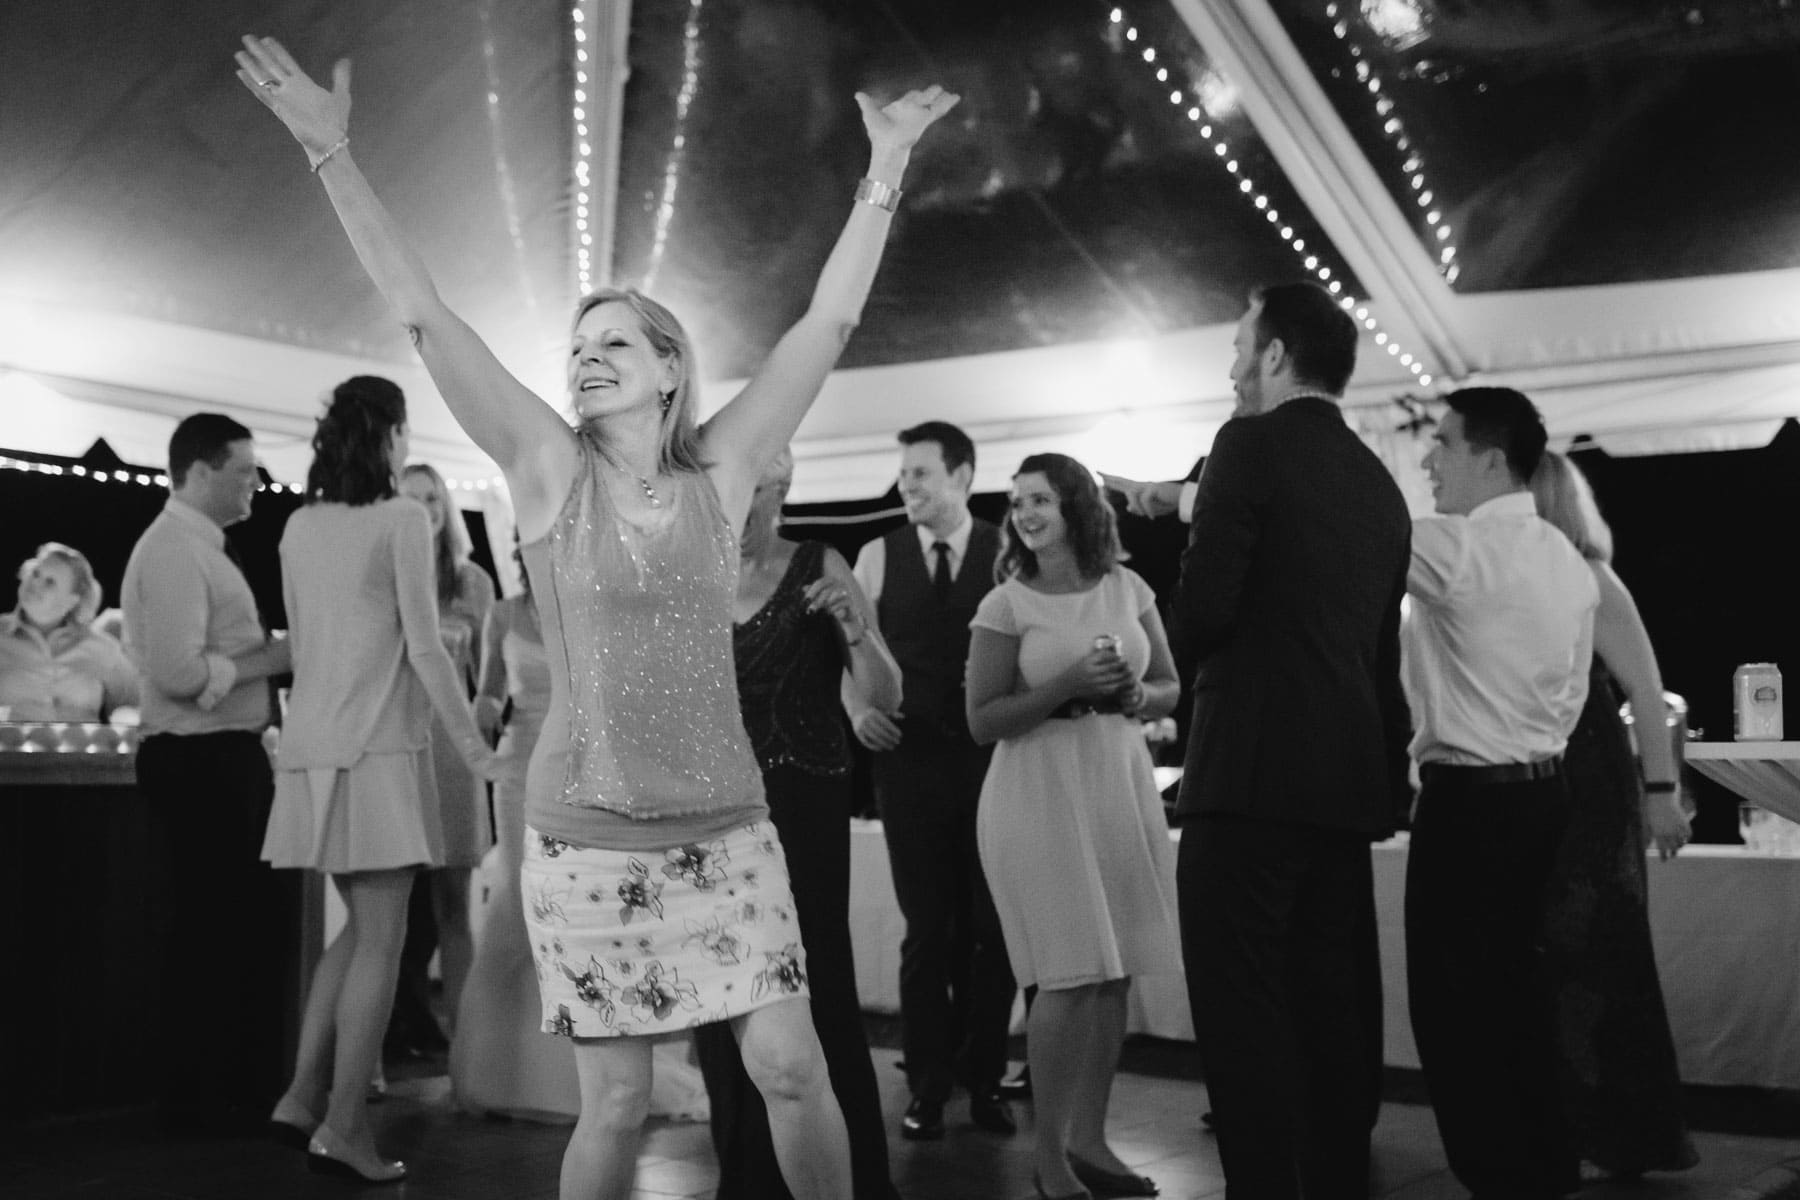 A woman dances under a white tent in these backyard wedding photos.